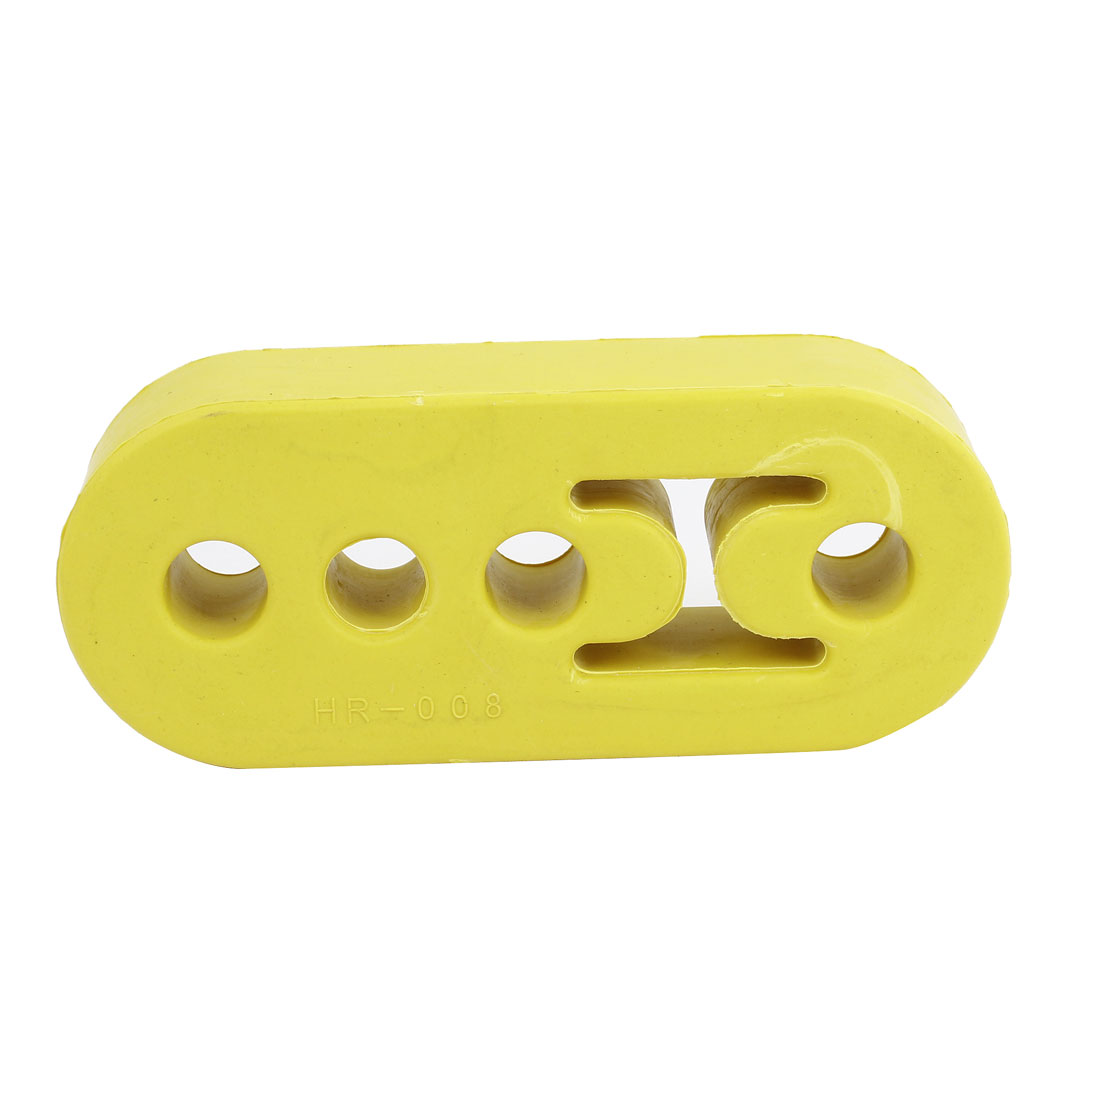 Universal 4 Hole Rubber Automobile Car Exhaust Hanger Bushing Yellow